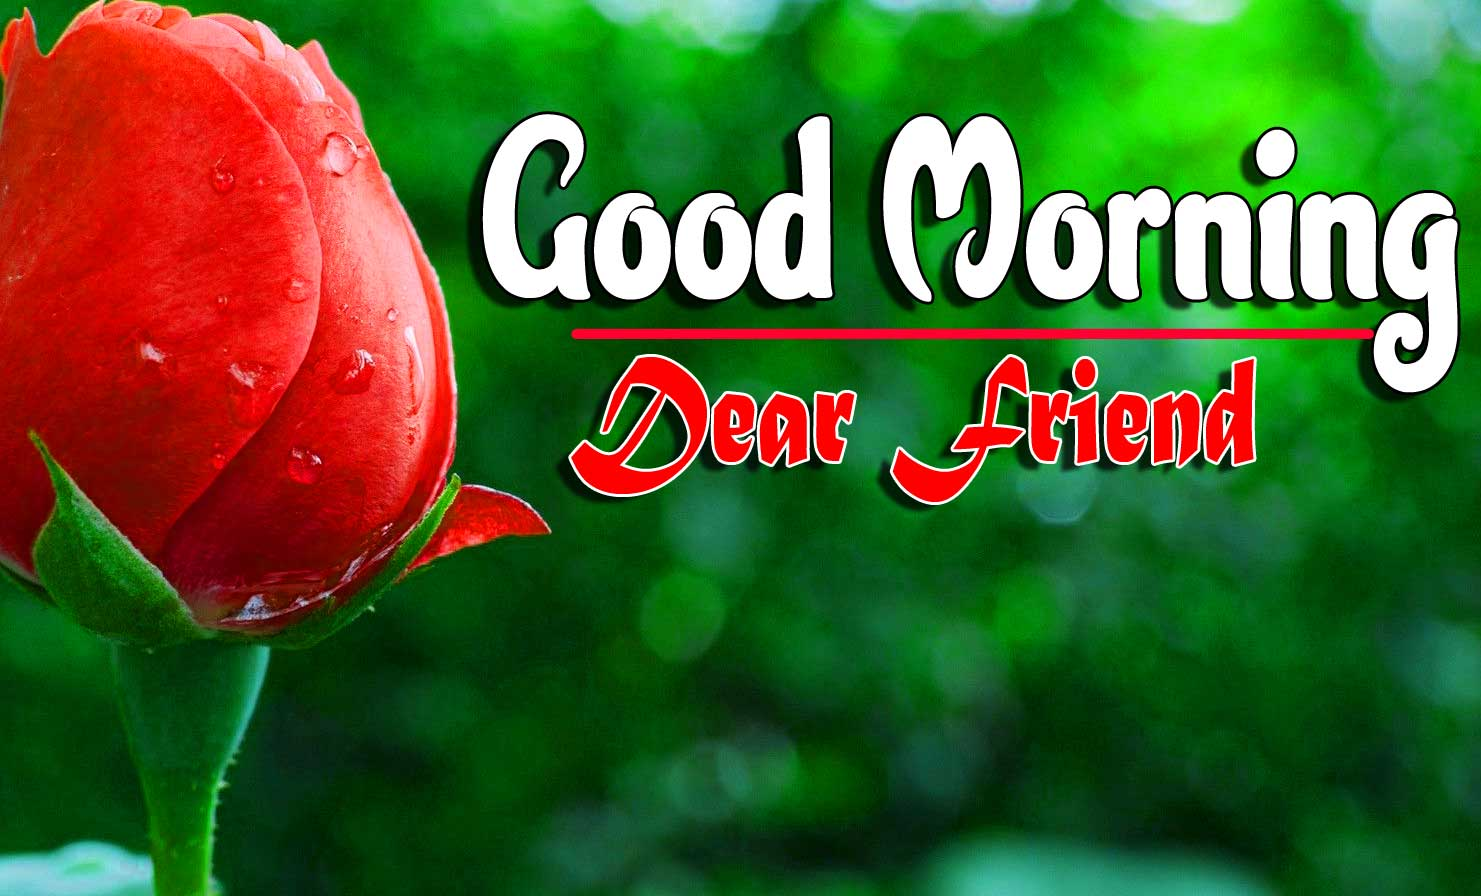 New Good Morning For Facebook Pics